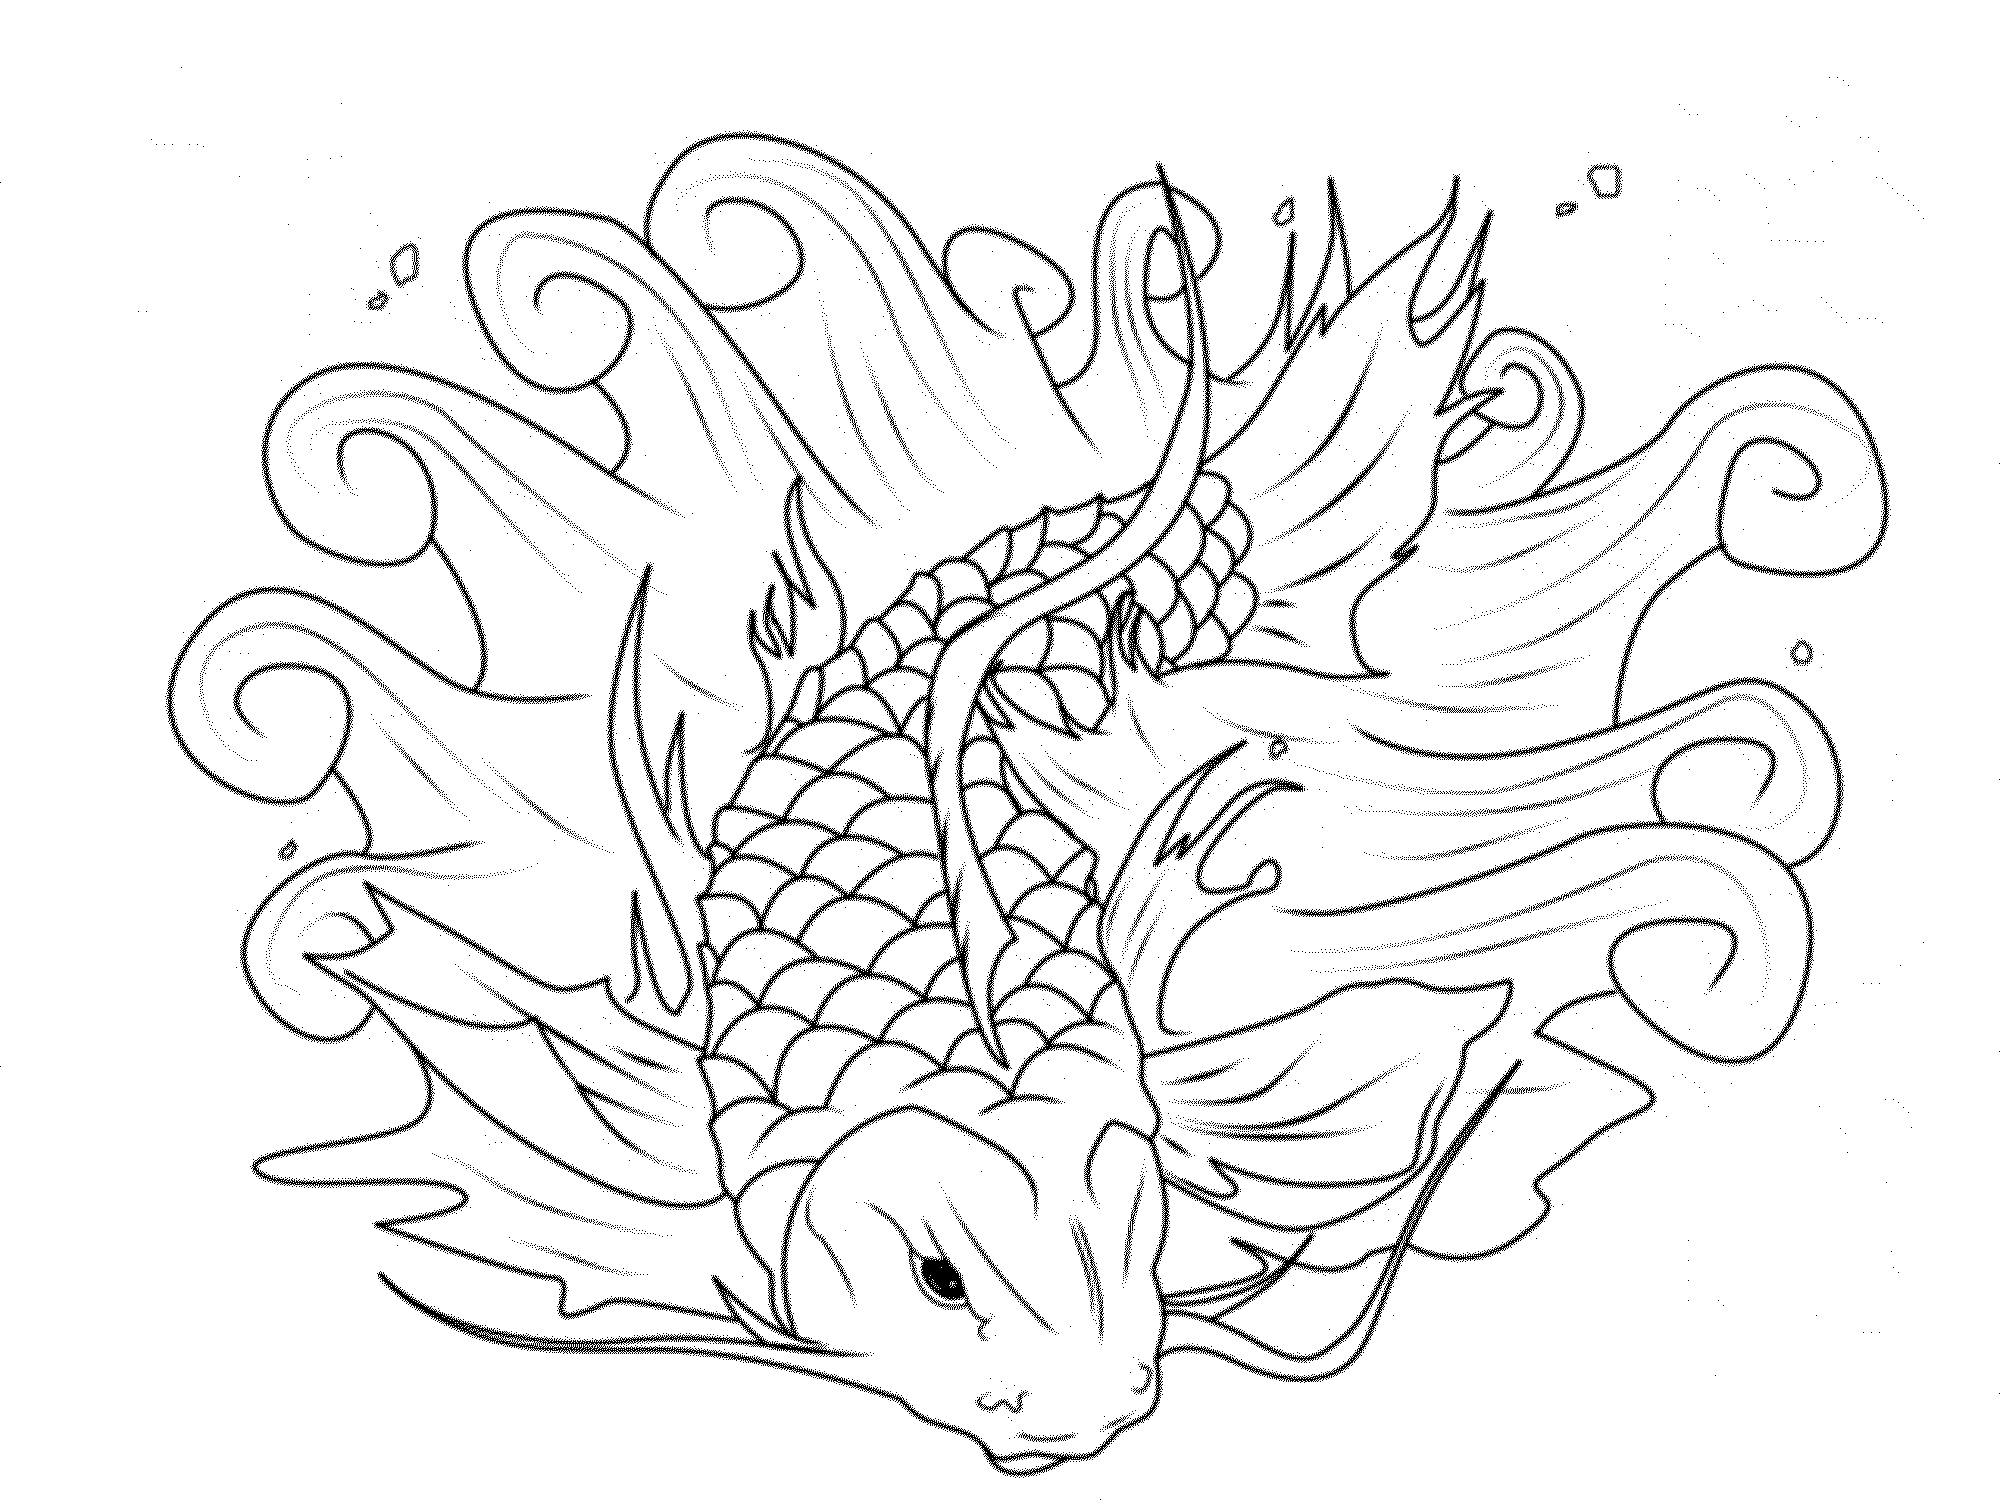 2000x1500 Koi Fish Coloring Page Printable Koi, Fish